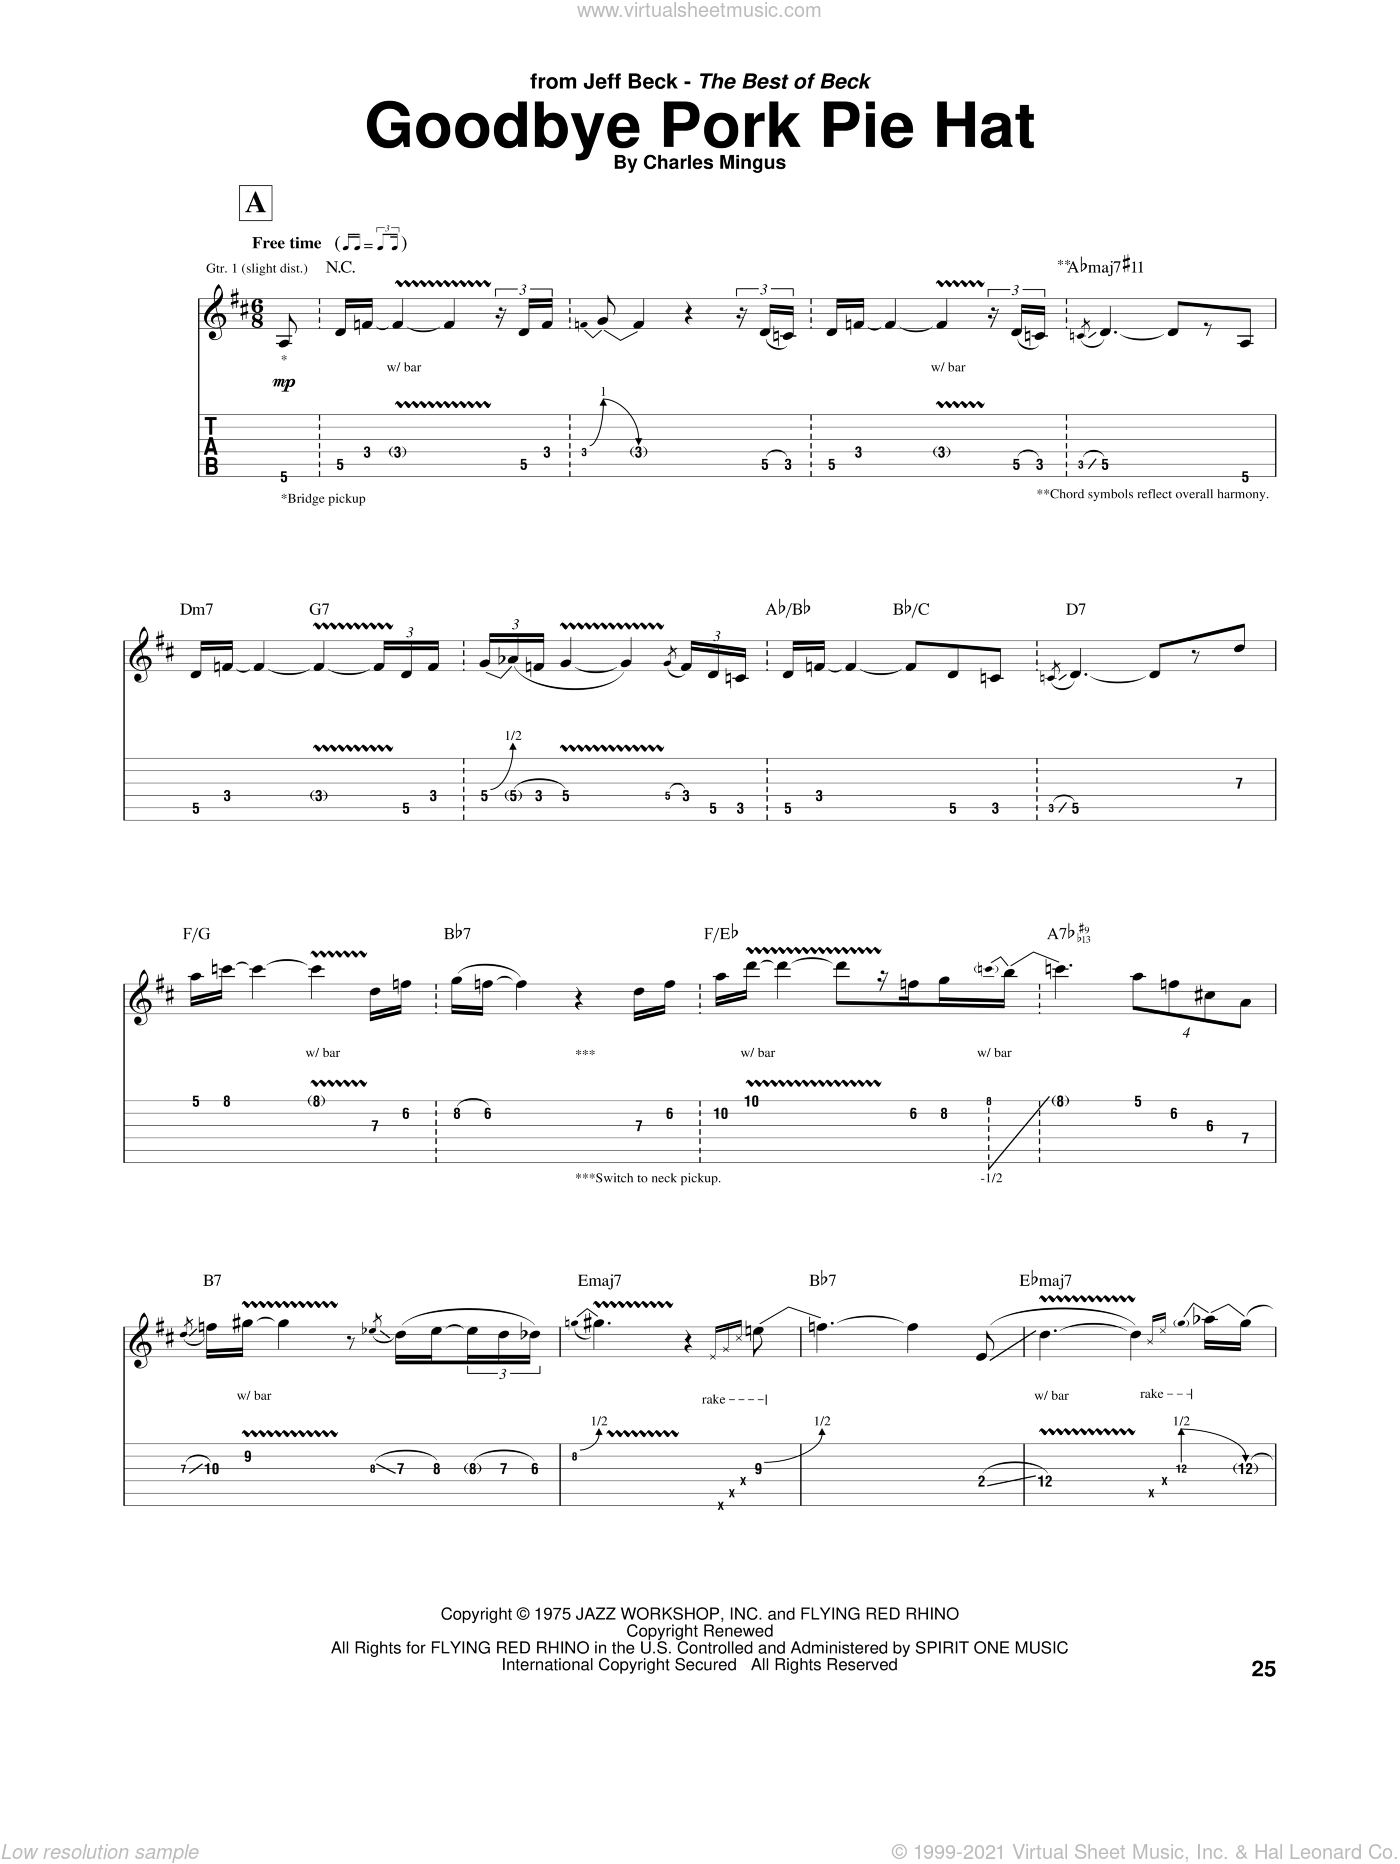 Goodbye Pork Pie Hat sheet music for guitar (tablature) by Jeff Beck and Charles Mingus, intermediate skill level